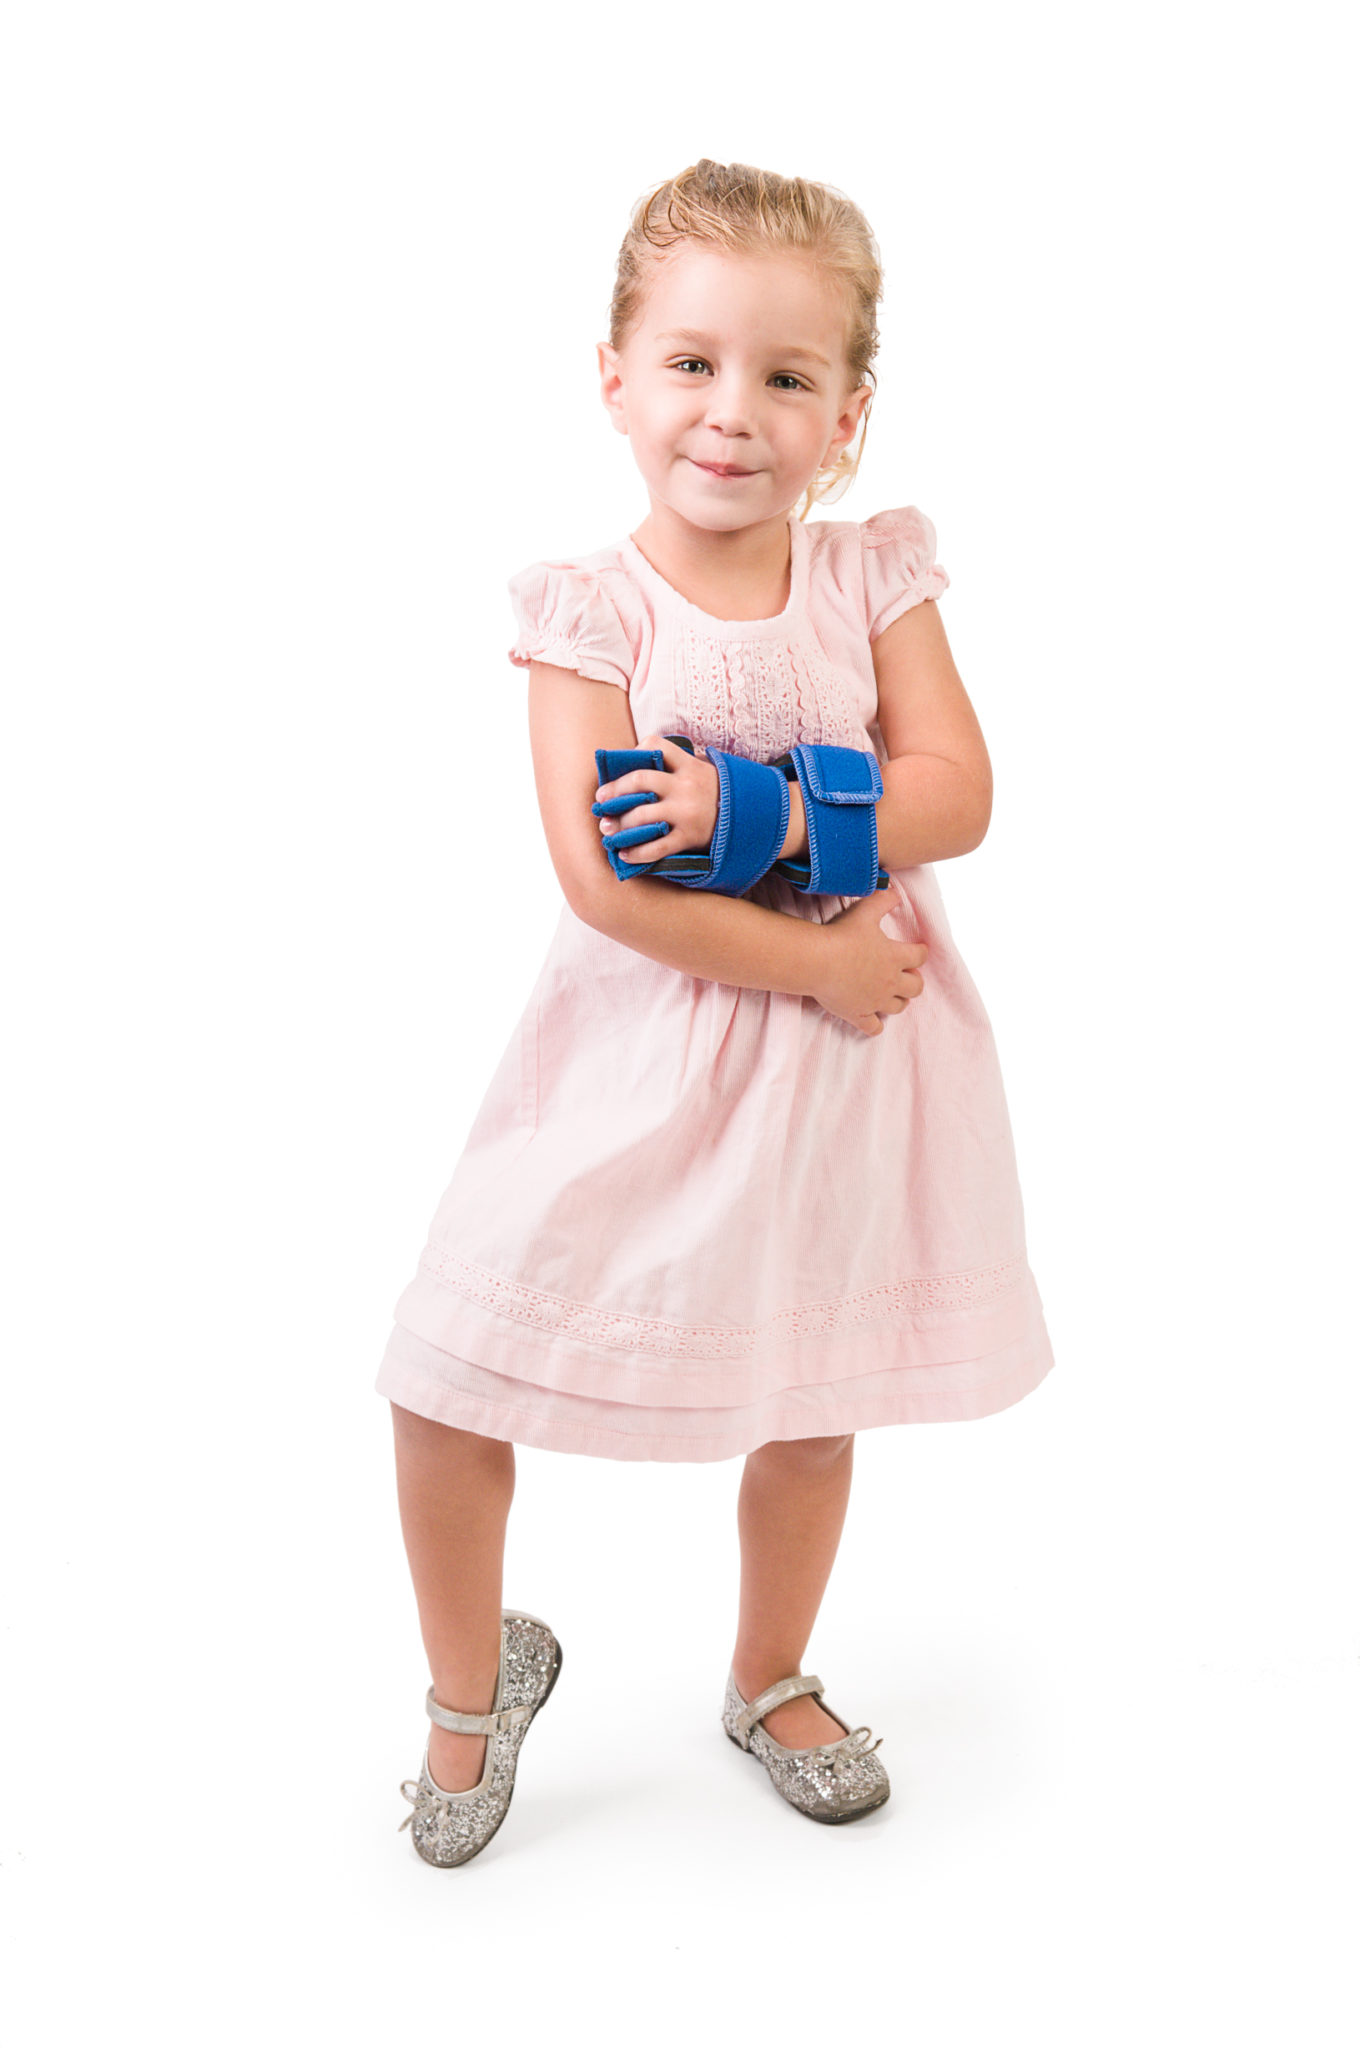 Pediatric Comfy Hands | Comfy Splints